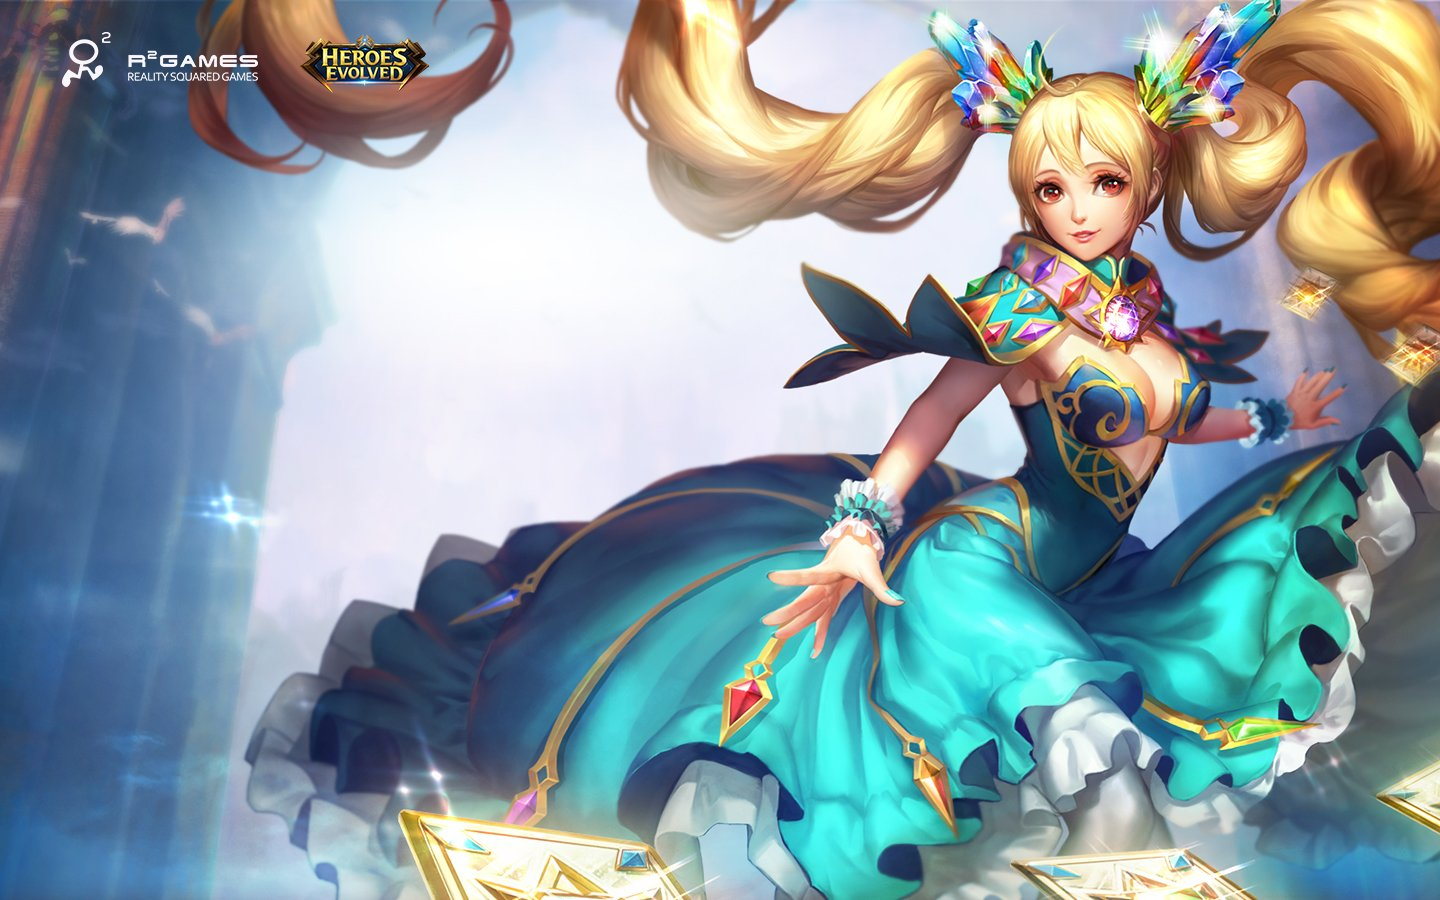 Media Heroes Evolved competitive MOBA 1440x900